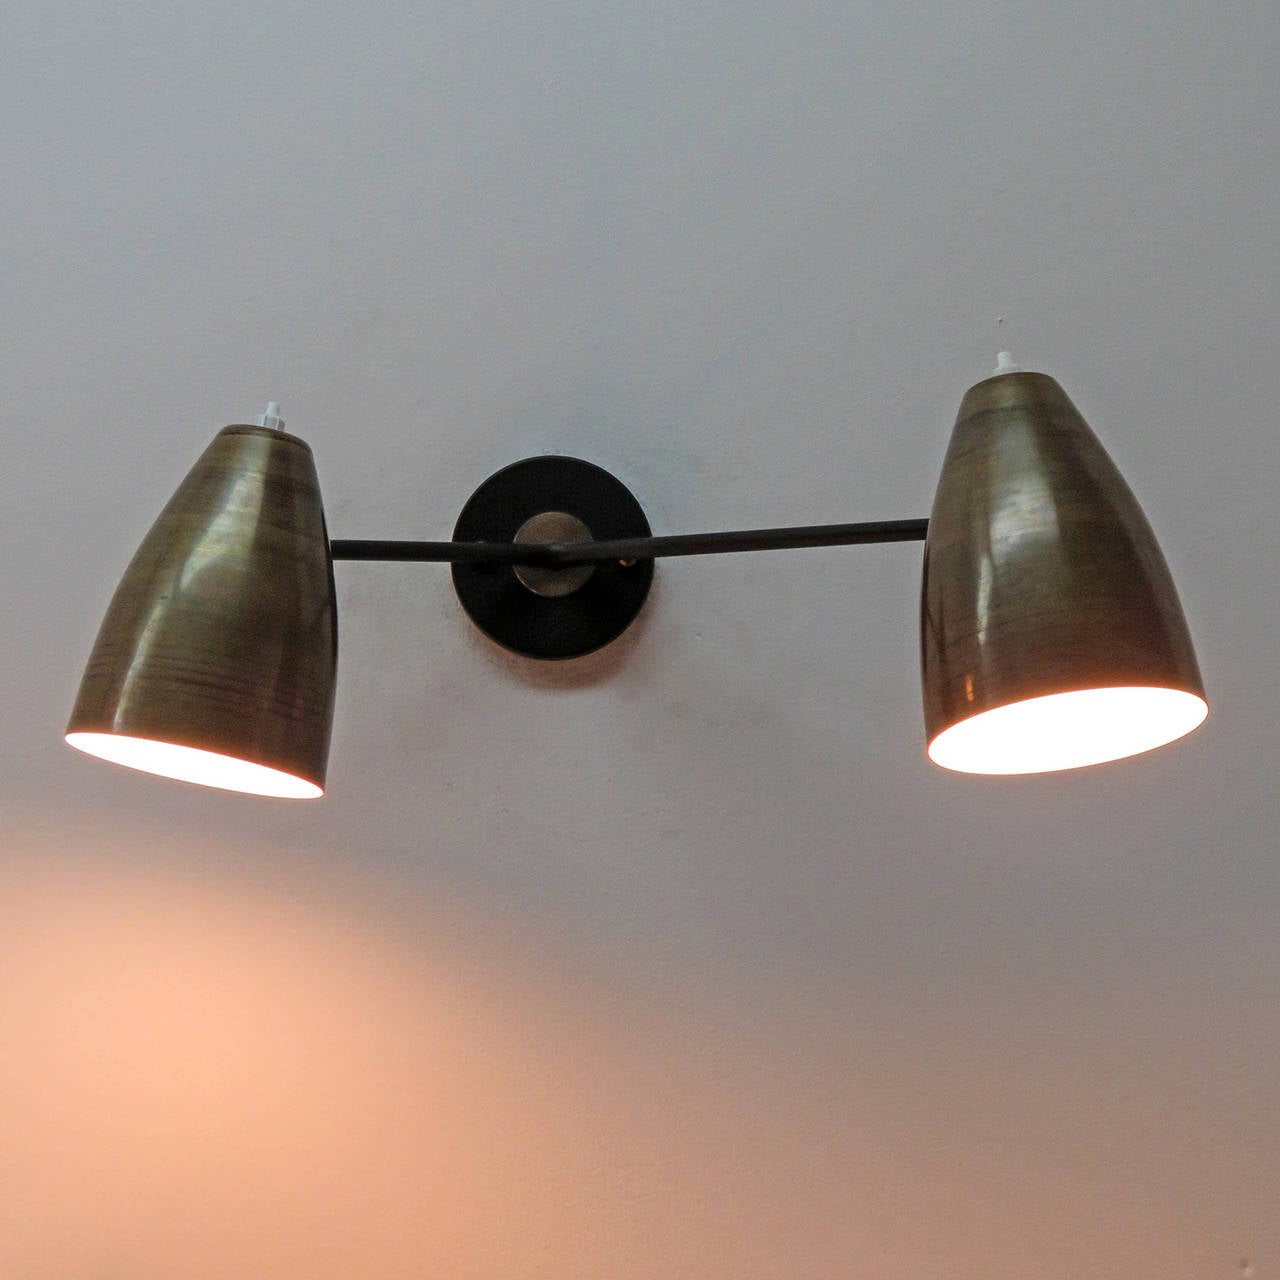 Double Arm Brass Wall Lights 'L3G' For Sale 1